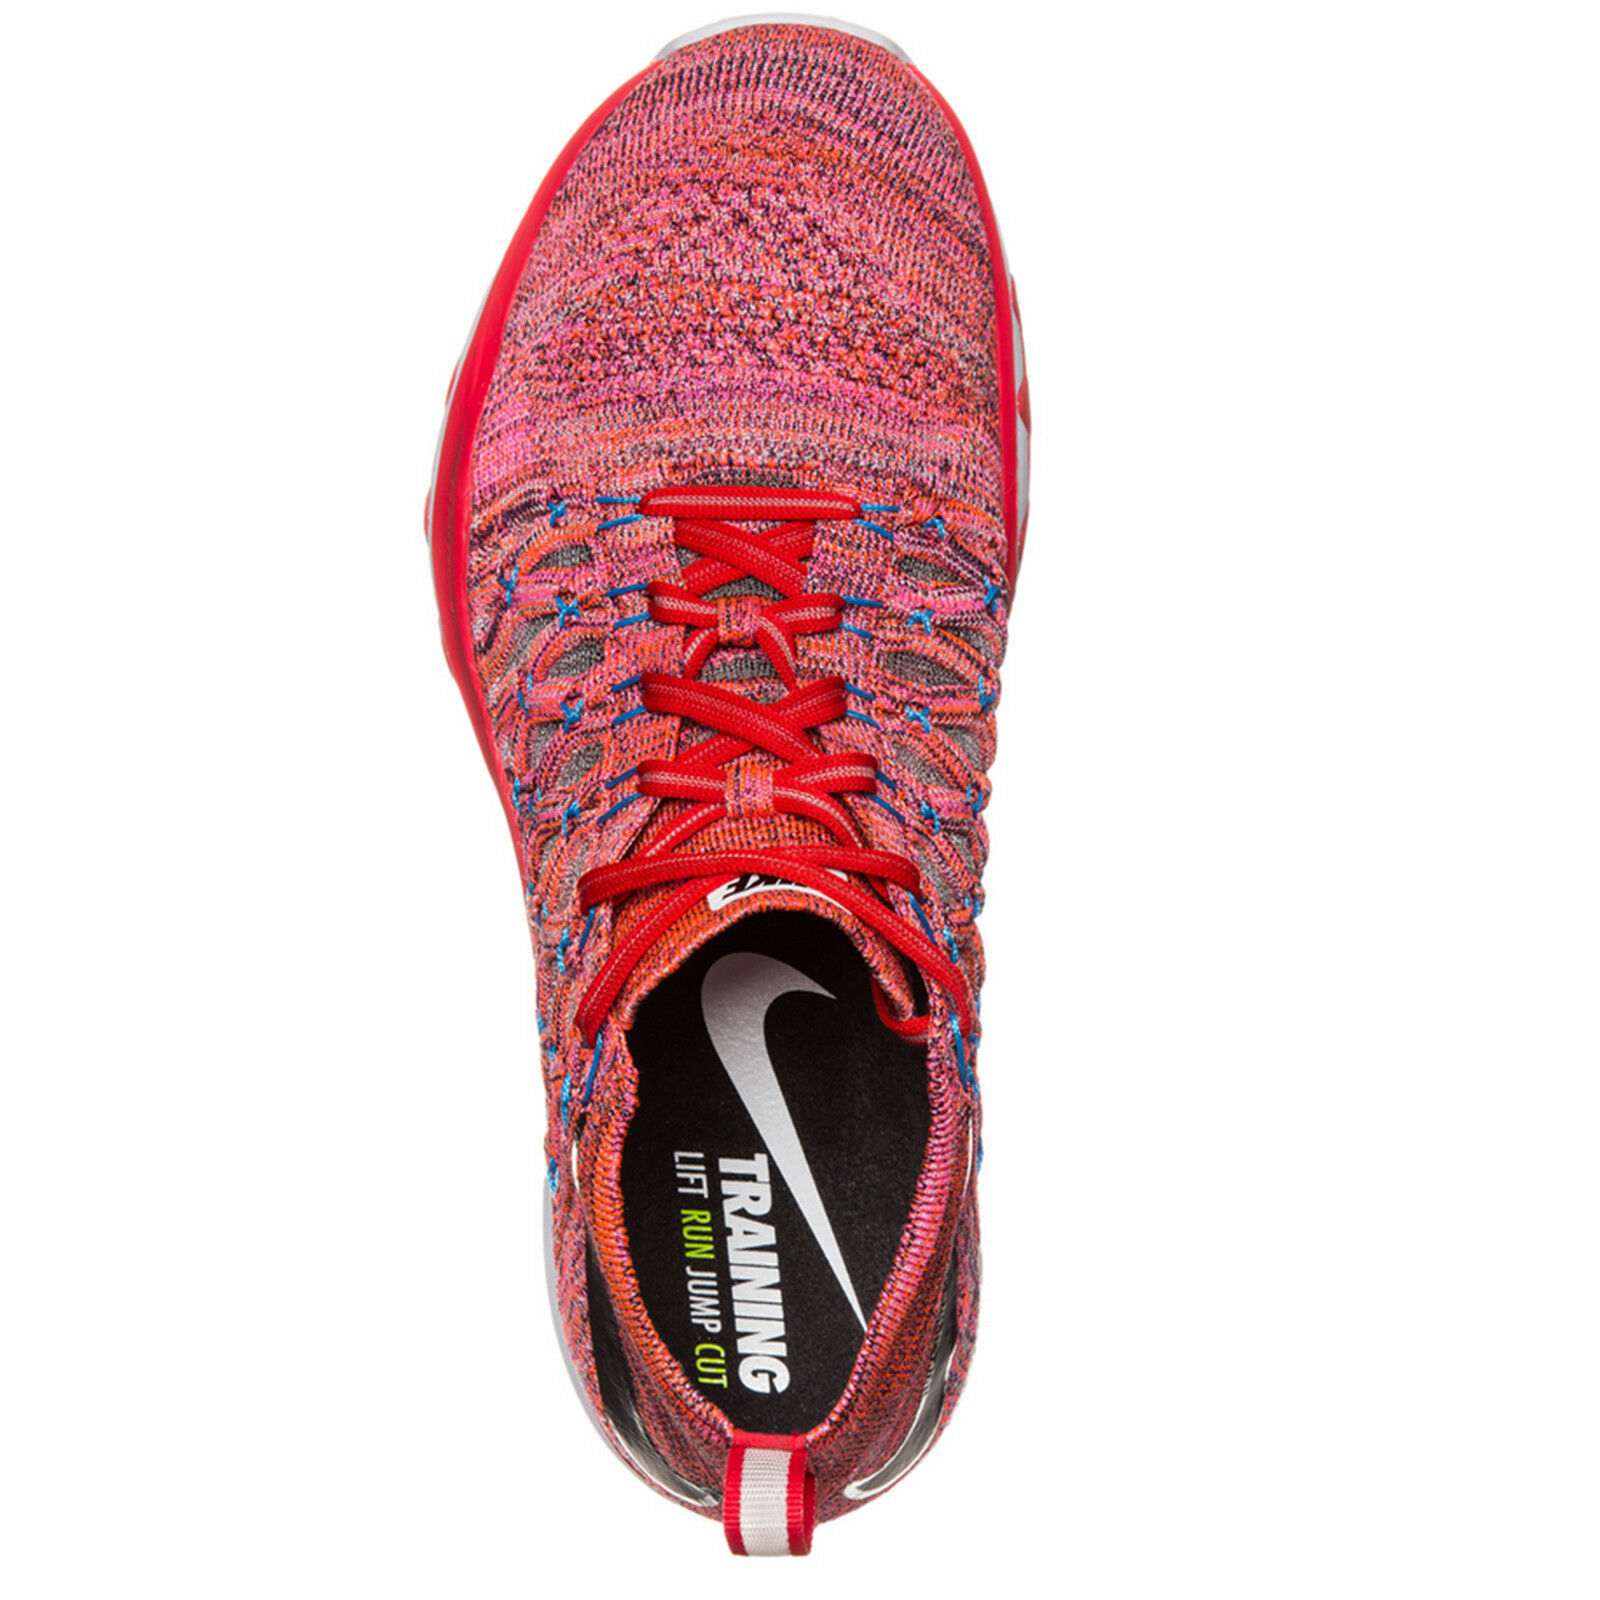 NIKE Men's TRAIN ULTRAFAST FLYKNIT (843694-500) Running Shoes,New with Box